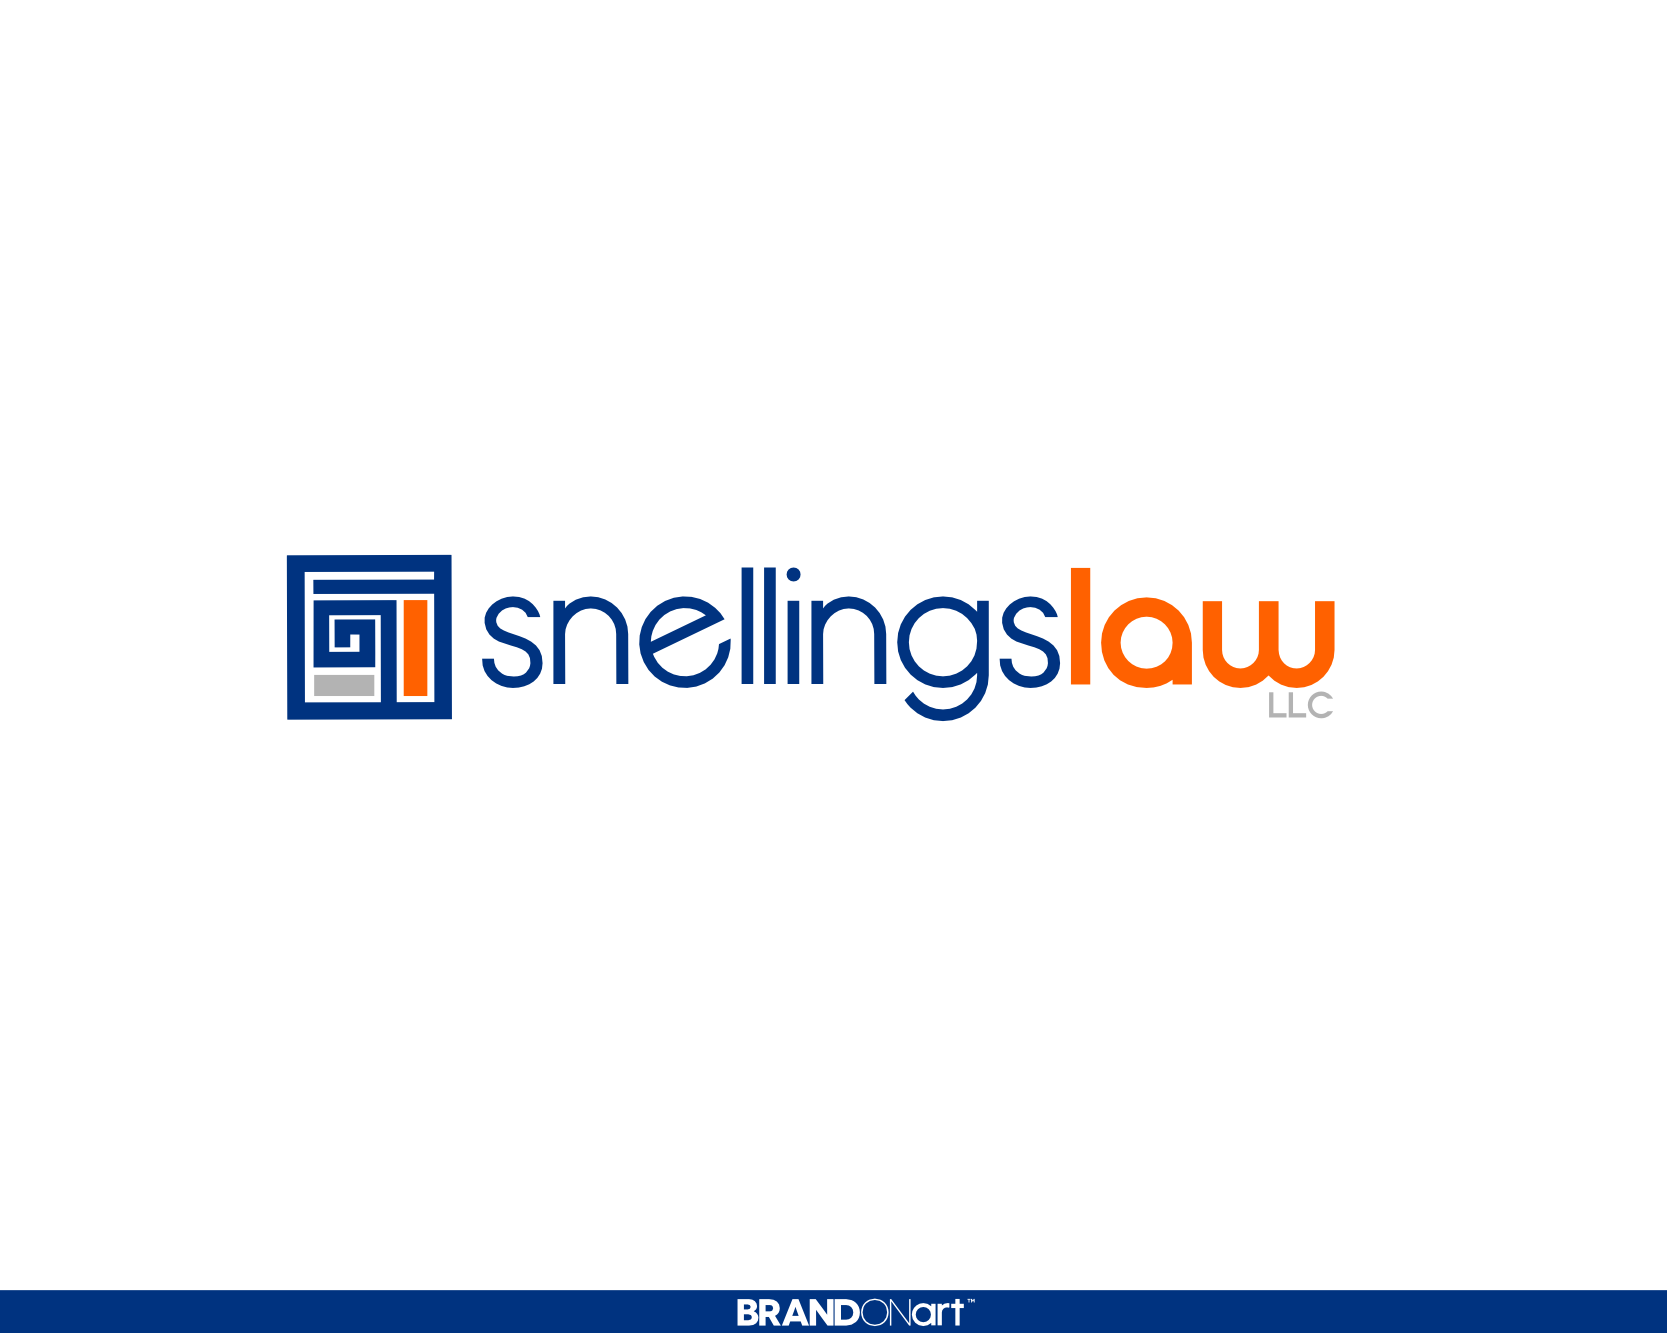 Modern, Trendy logo design for Snellings Law LLC